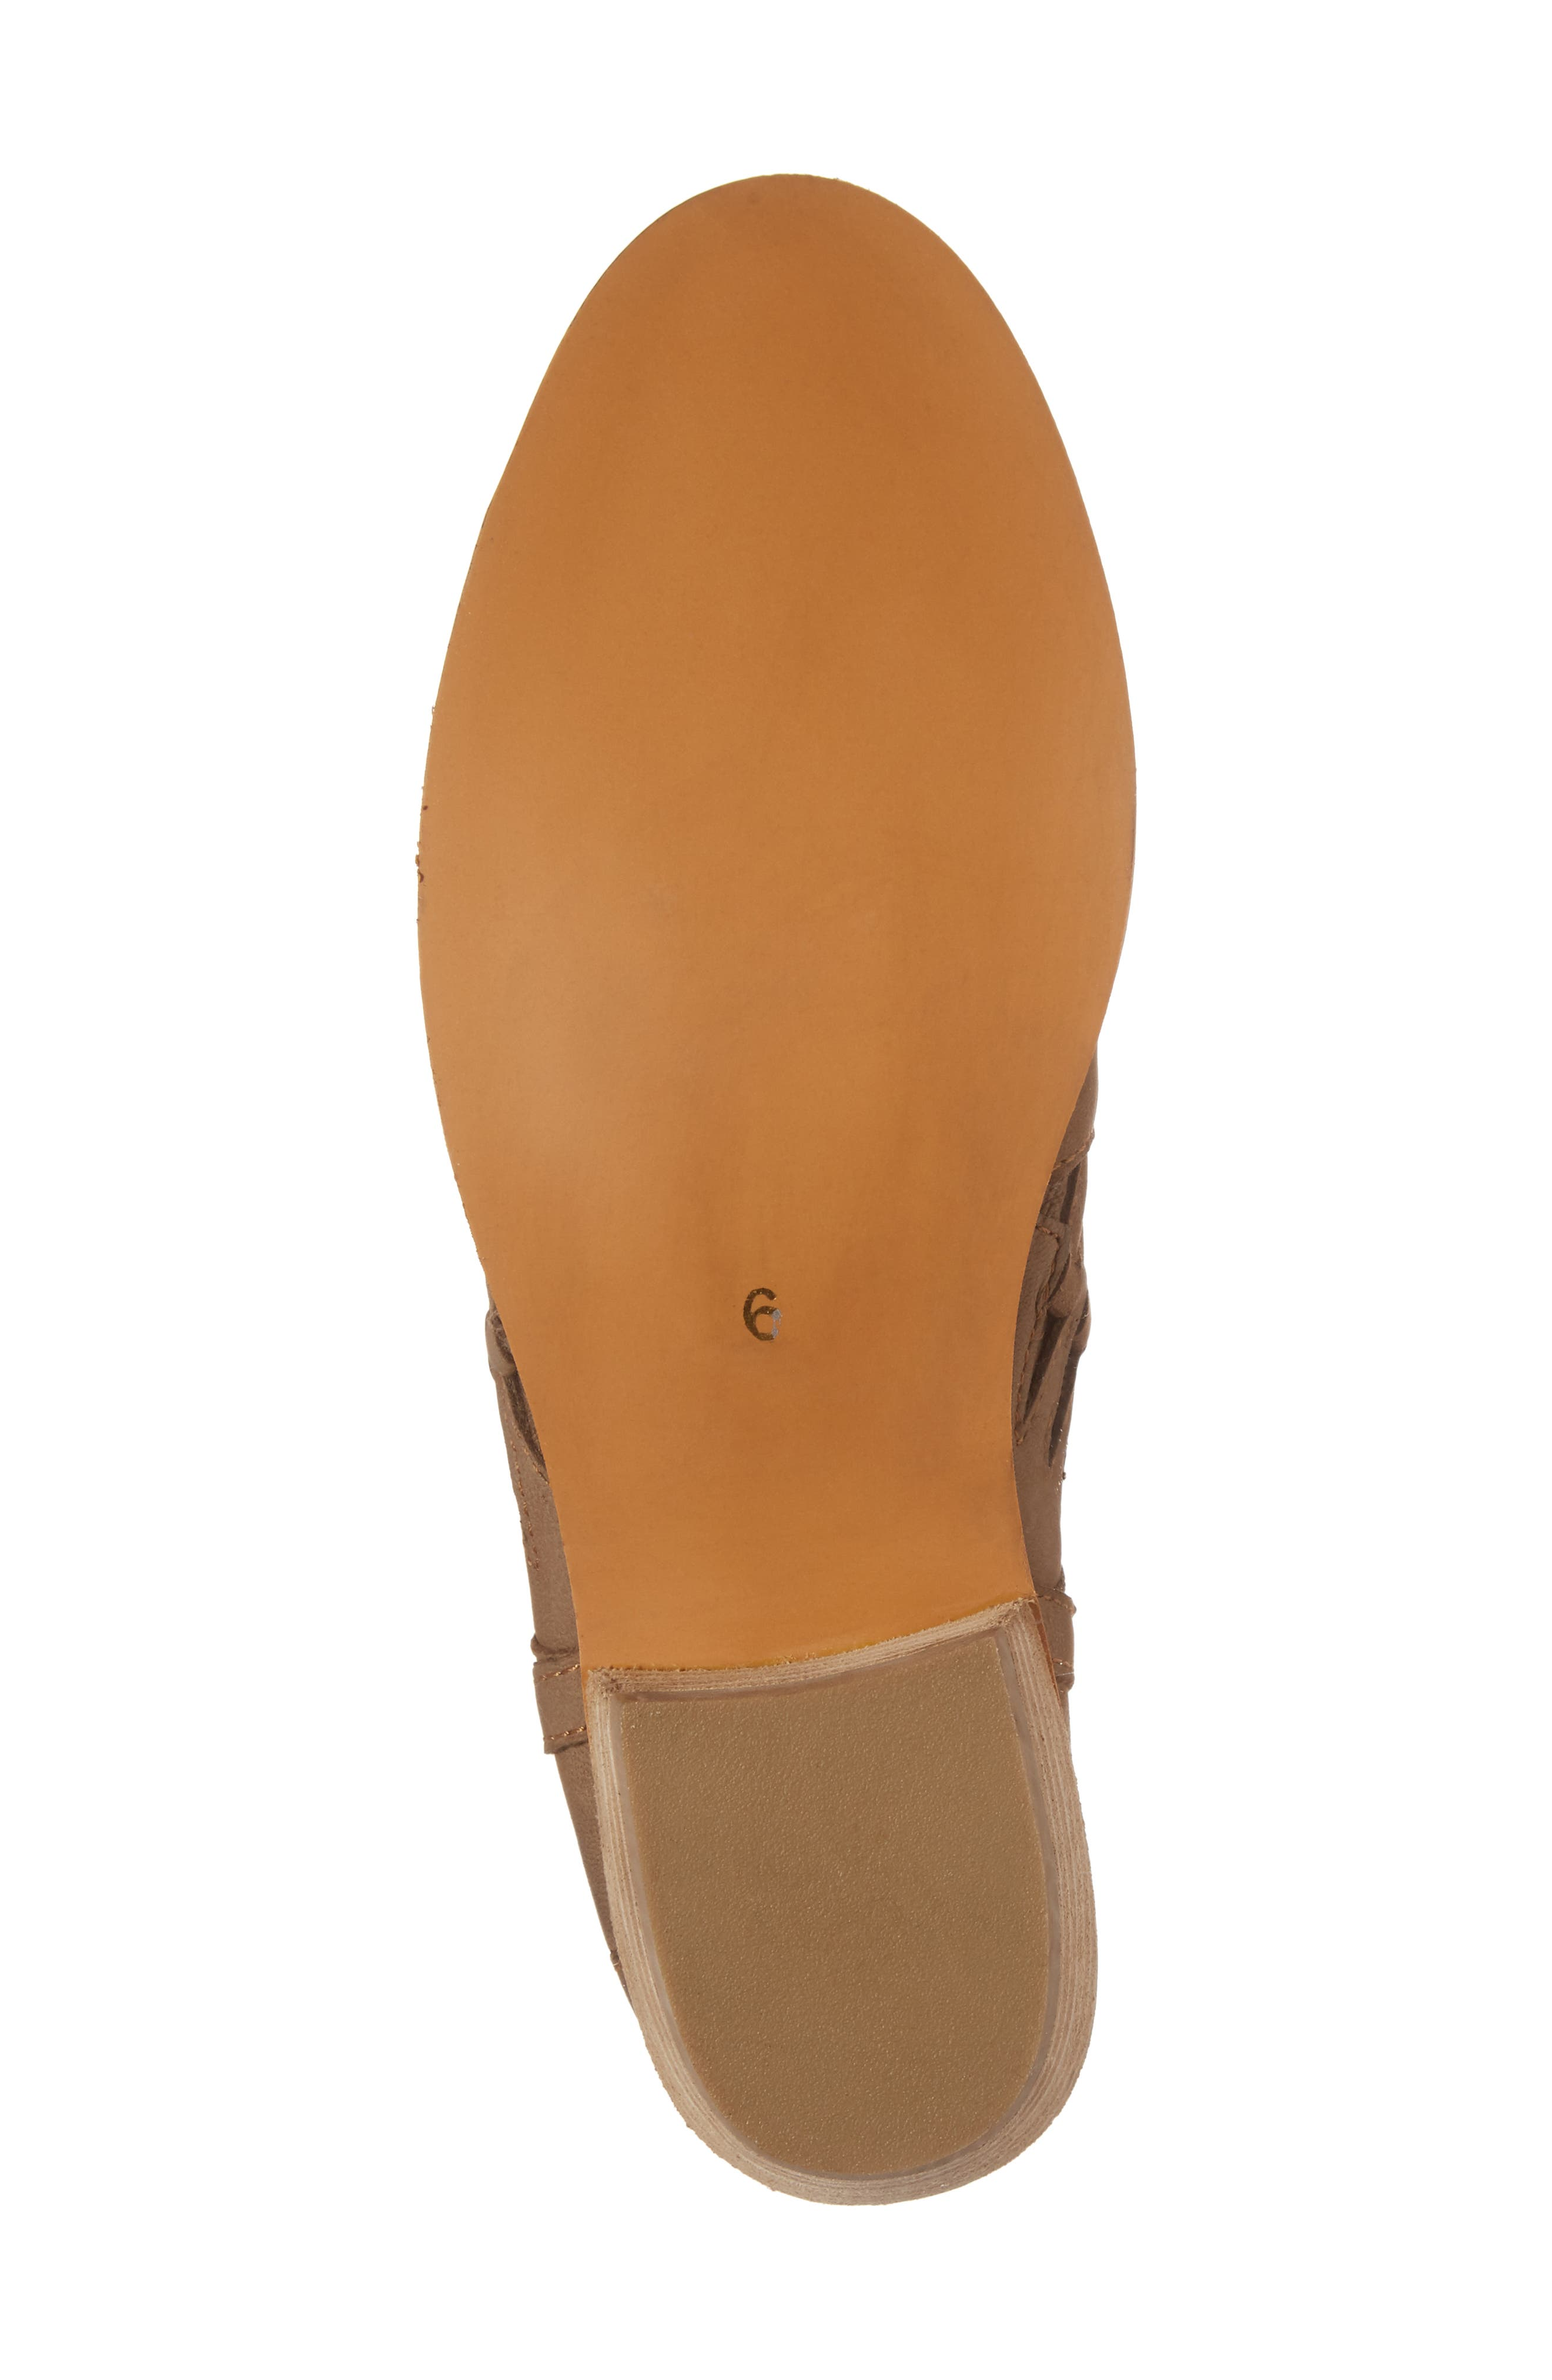 Yuma Bootie,                             Alternate thumbnail 6, color,                             Cognac Washed Nubuck Leather